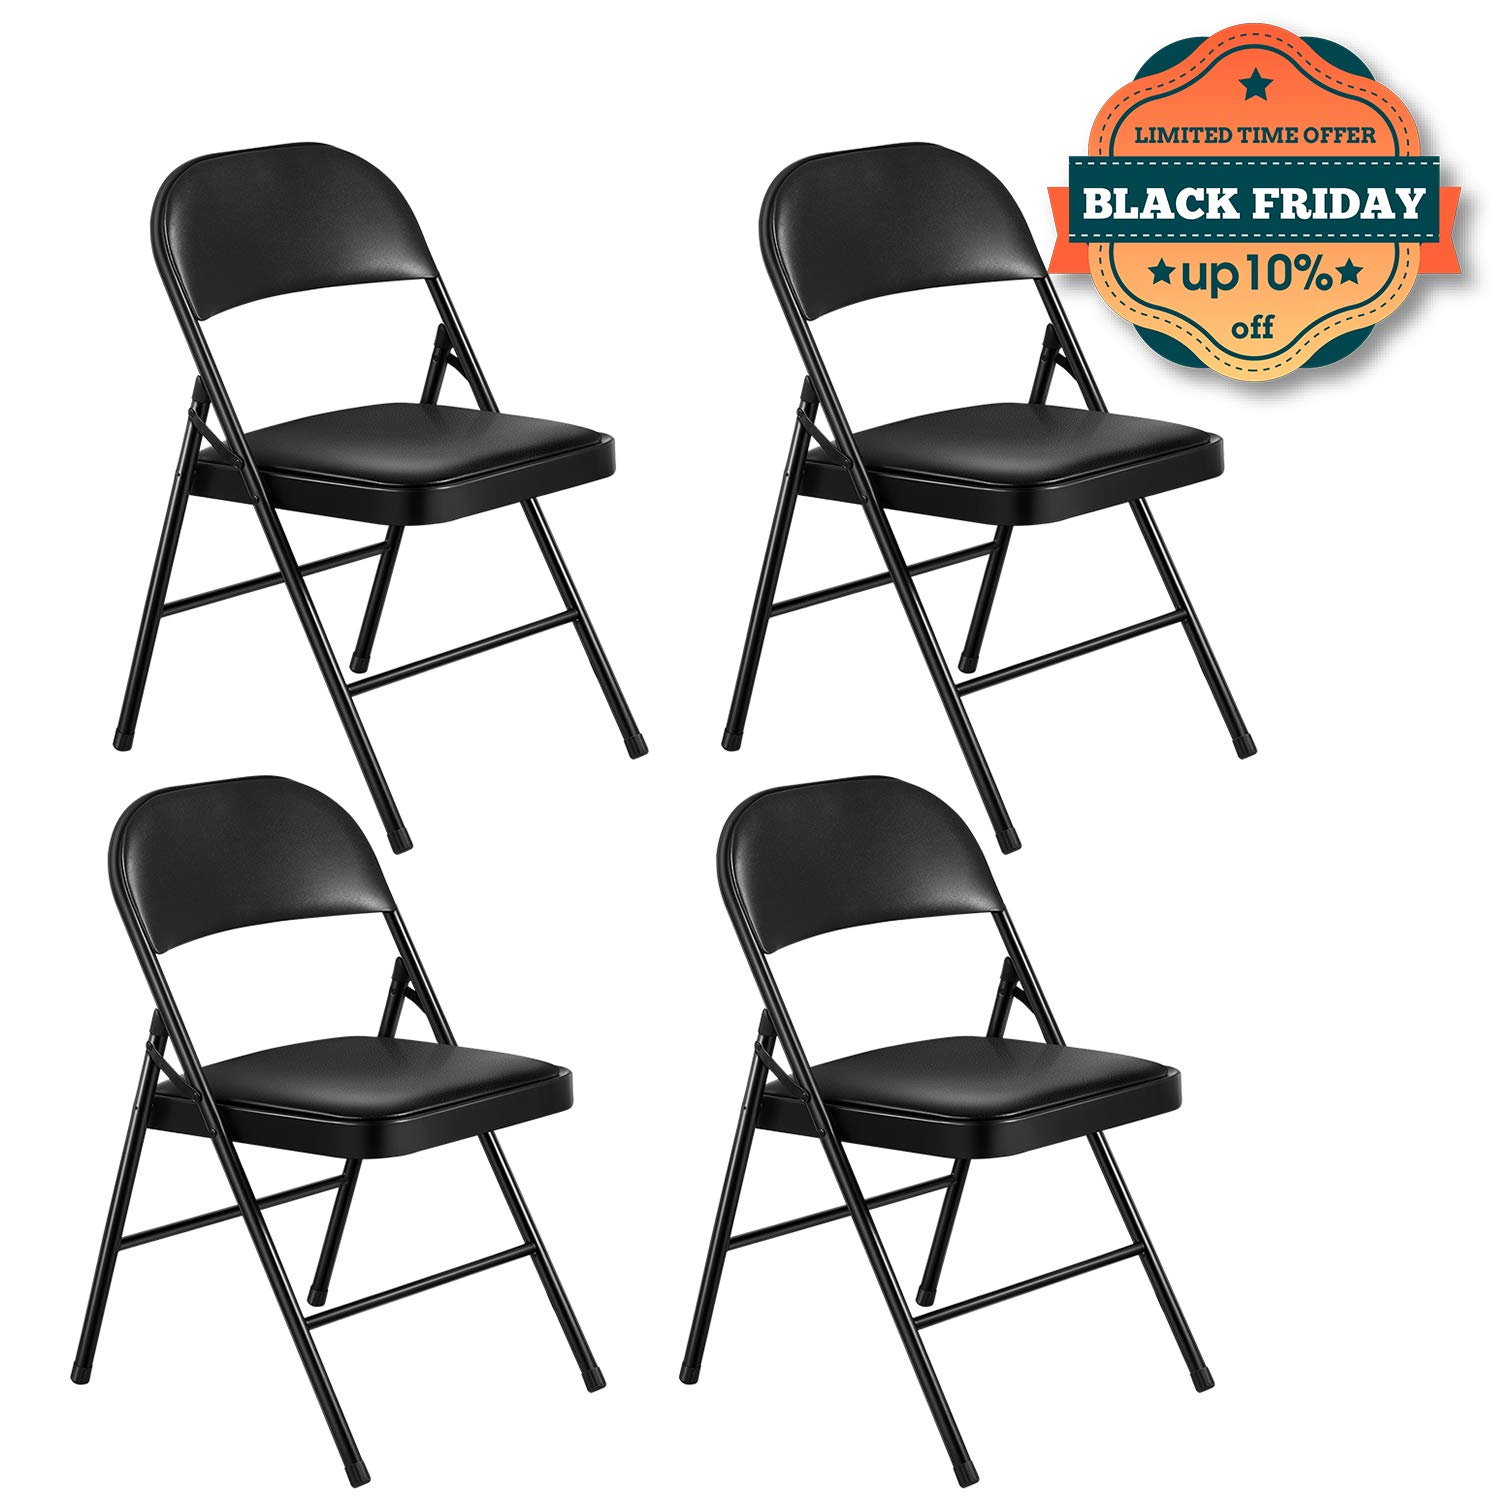 Kealive Folding Chair Steel Upholstered Padded Seat and Back 4 Pack Vinyl Padded Folding Chairs Stacked Double Hinged 480 lbs Weight Capacity, 4 Padded Dining Chairs Metal Frame, Black